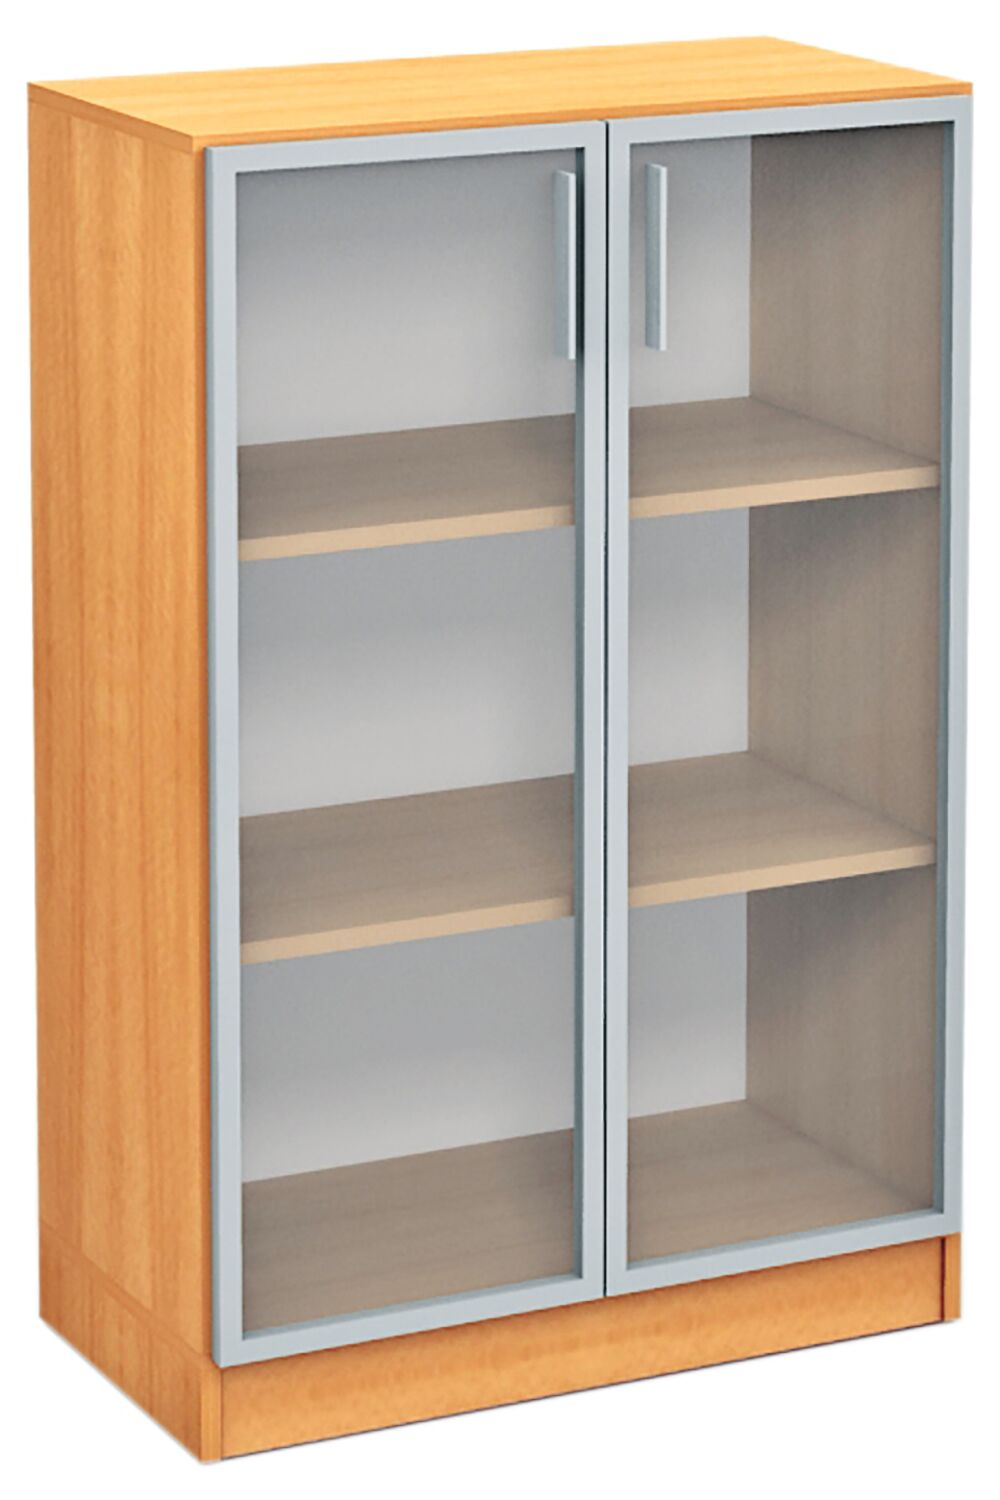 Medium showcase in aluminum frame beech